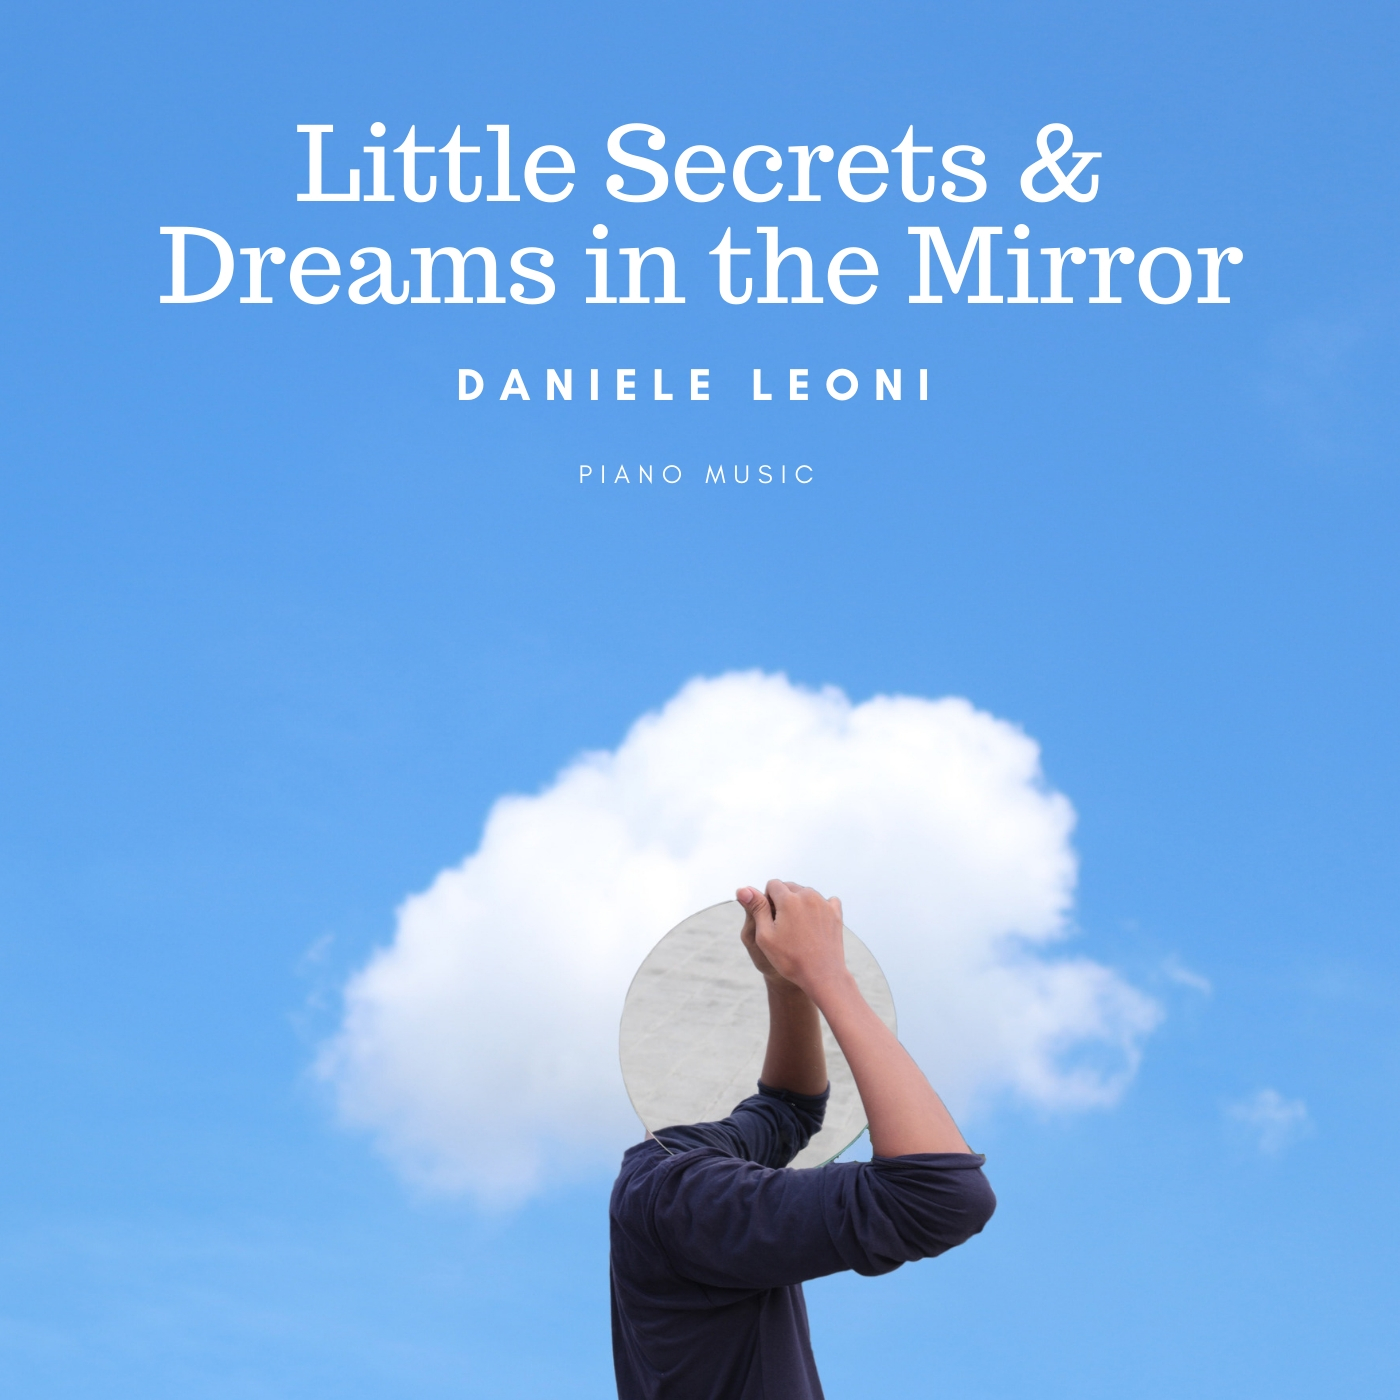 Little Secrets & Dreams in the Mirror